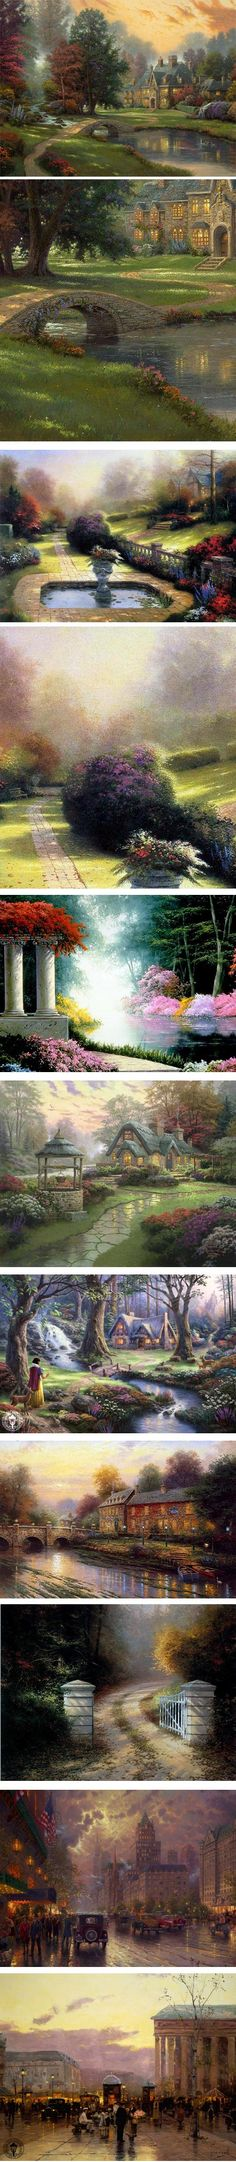 lines and colors :: a blog about drawing, painting, illustration, comics, concept art and other visual arts » Thomas Kinkade, 1958-2012